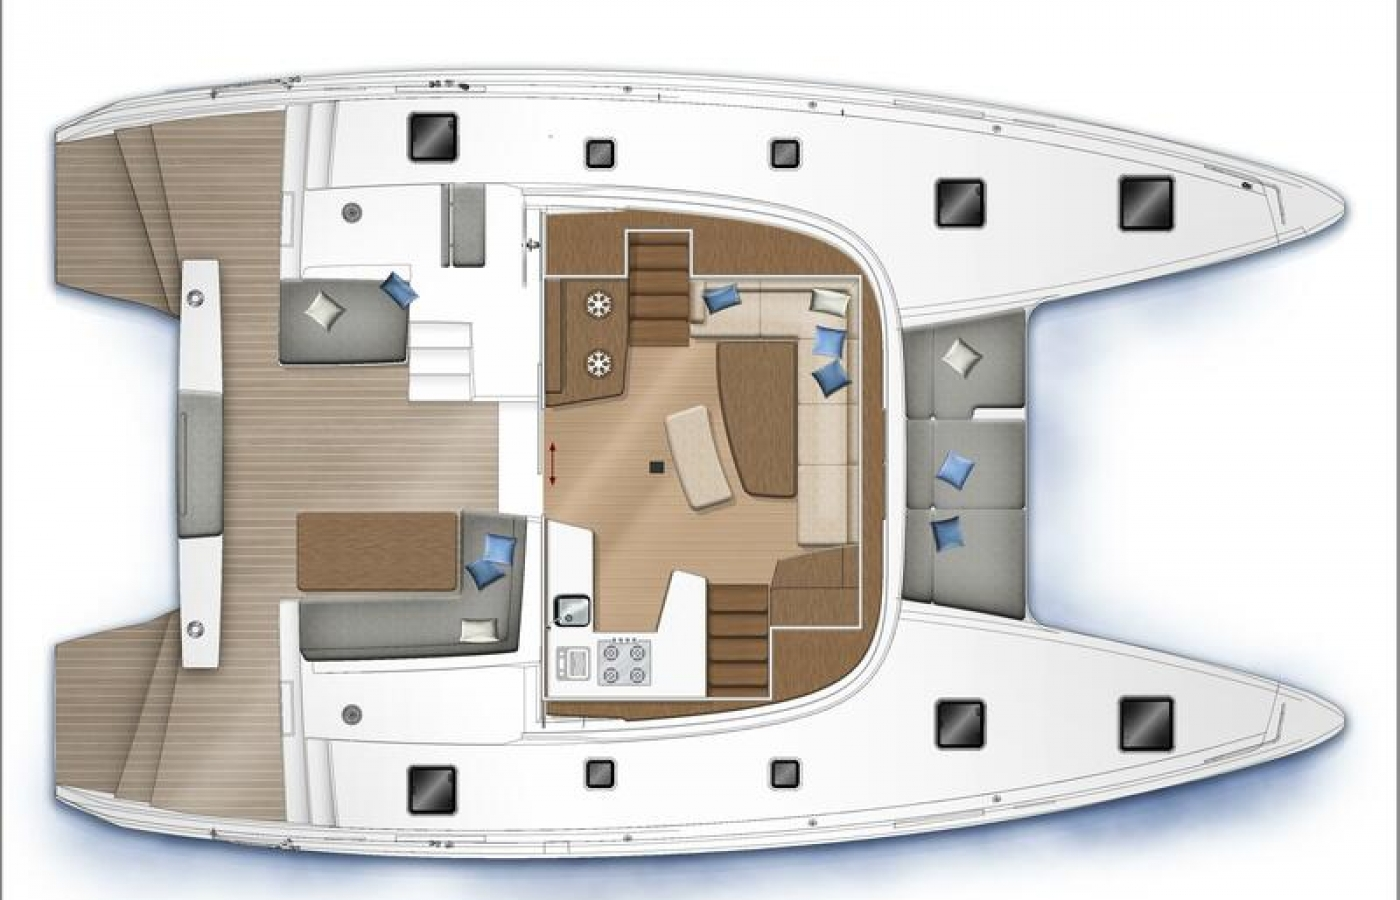 Lagoon 42 - Alice top deck layout.